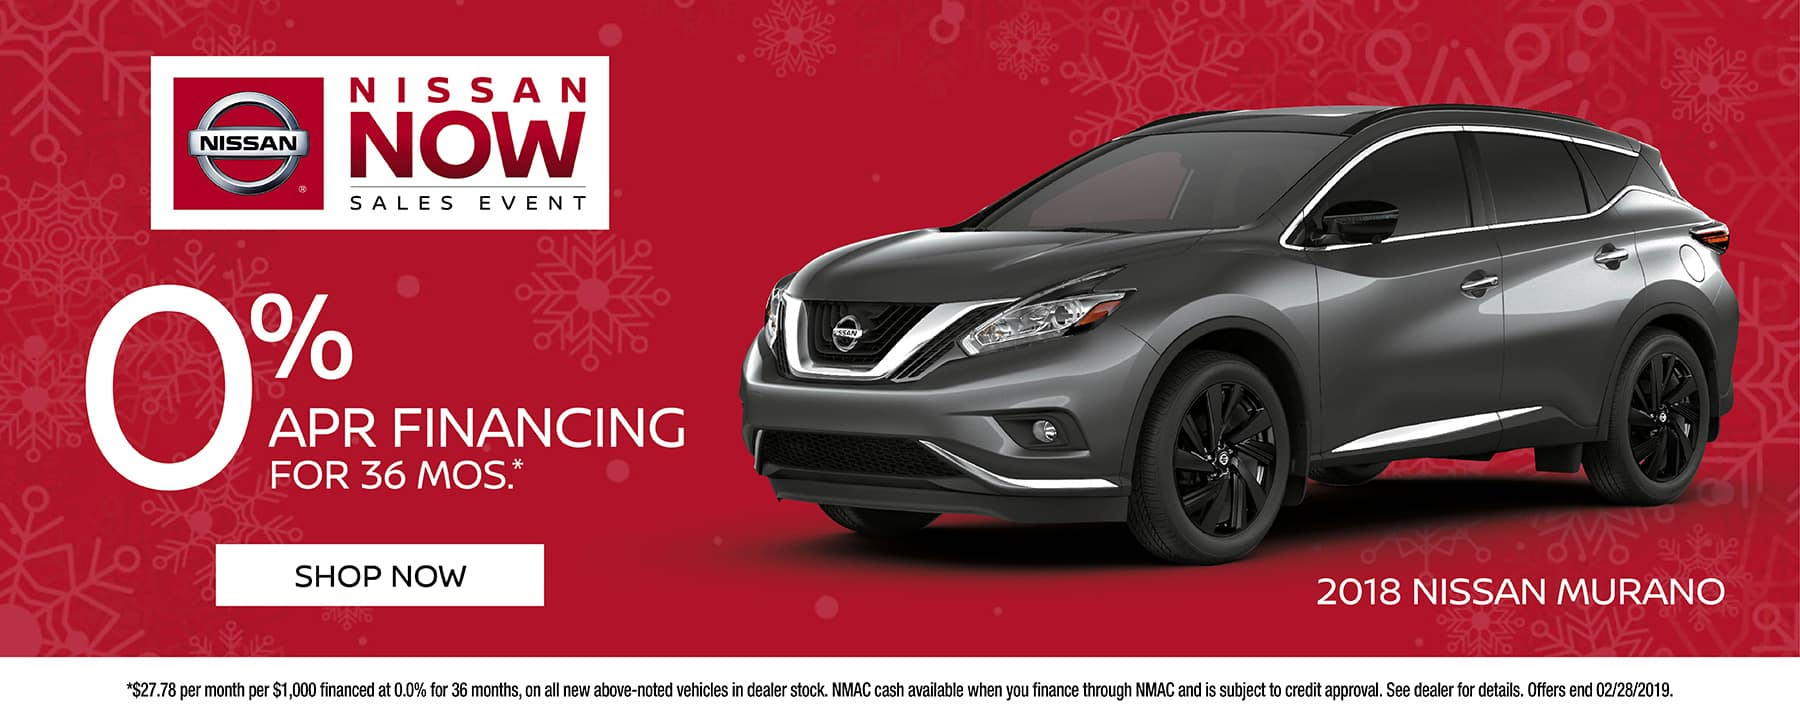 0% for 36 months available on 2019 Nissan Murano at Berman Nissan of Chicago!